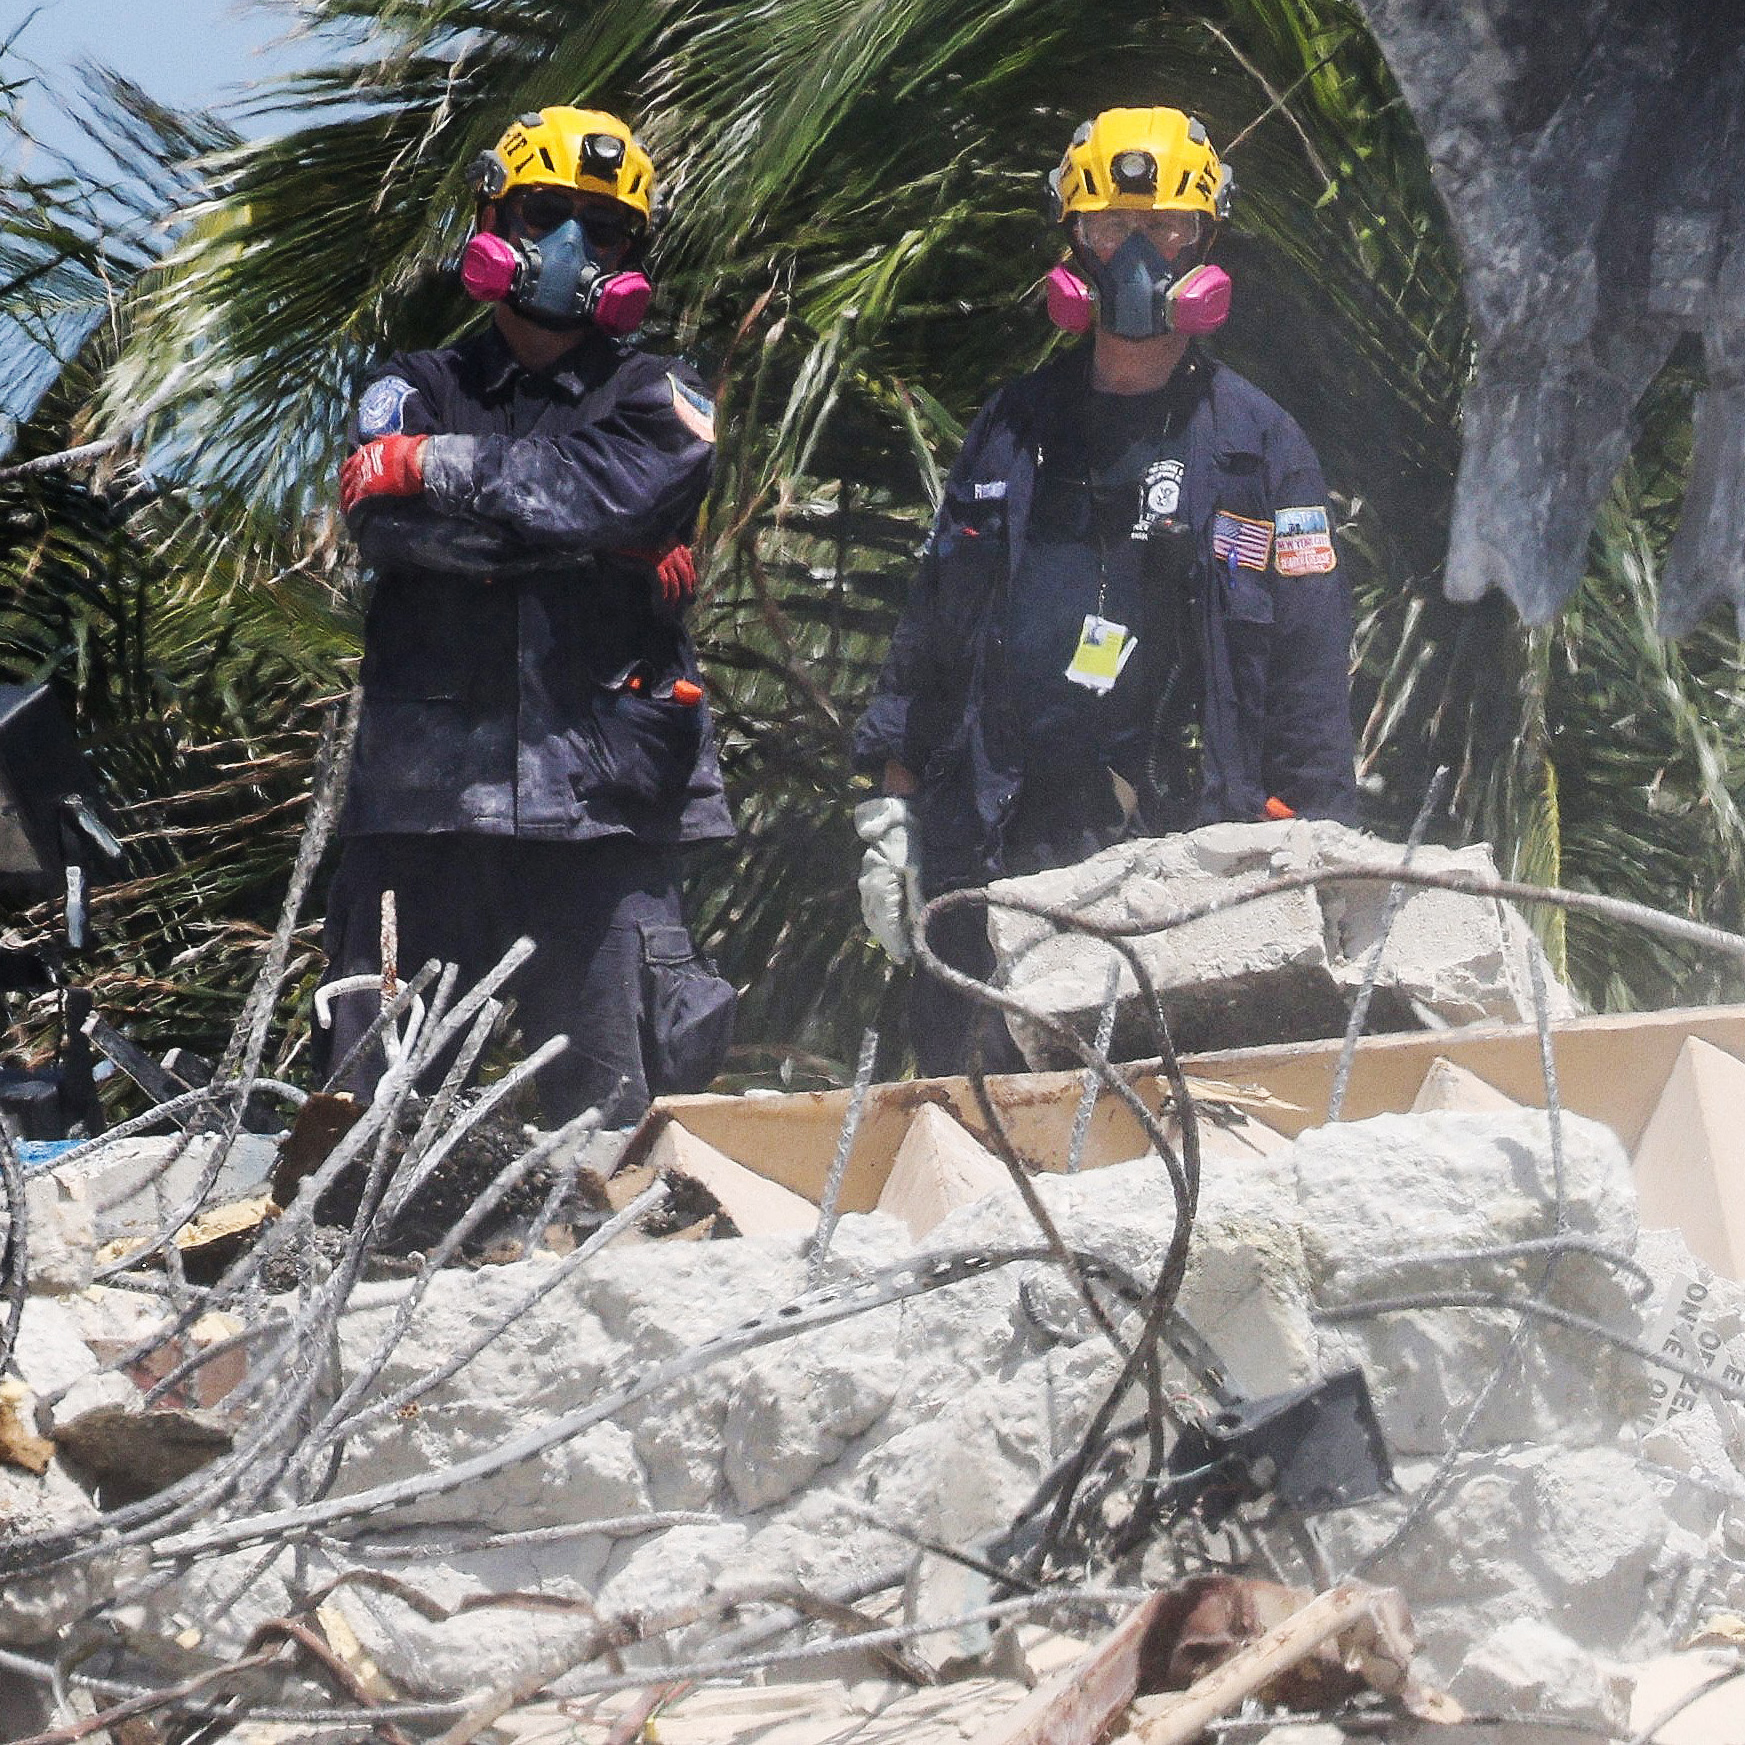 Search for bodies concludes at Surfside condo collapse site